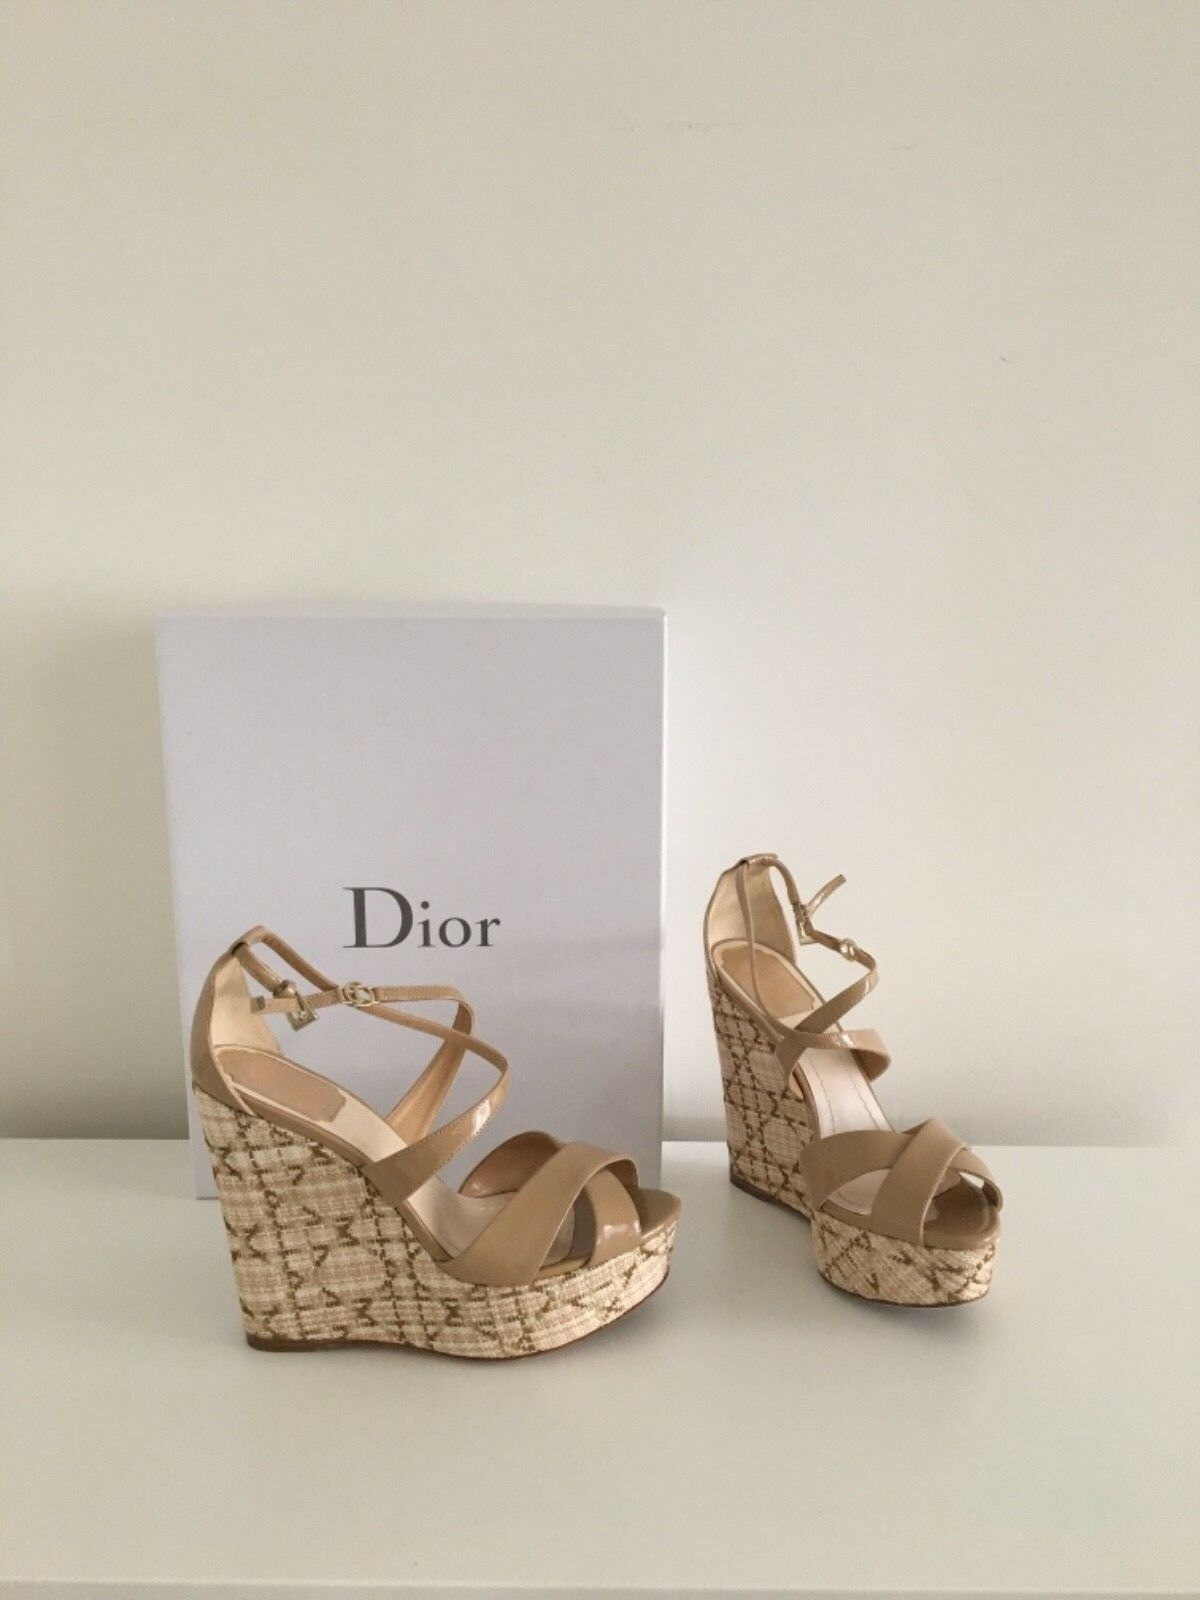 Christian Christian Christian dior wedge schuhe 36 authentic with box invoice 0ccf06